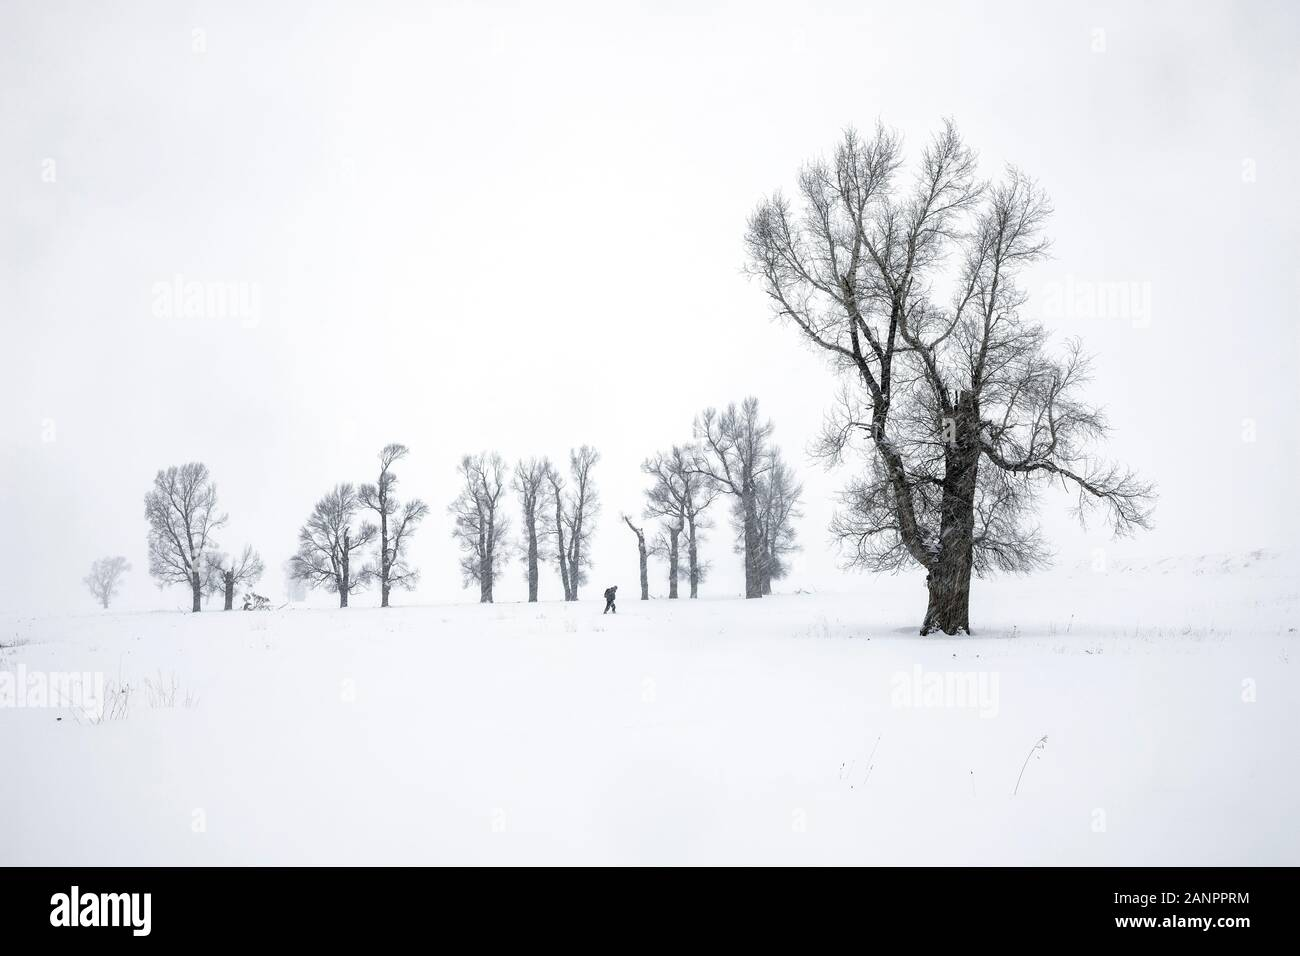 WY03626-00...WYOMING - Cottonwood trees during a snow storm in the Lamar Valley of Yellowstone National Park. Stock Photo